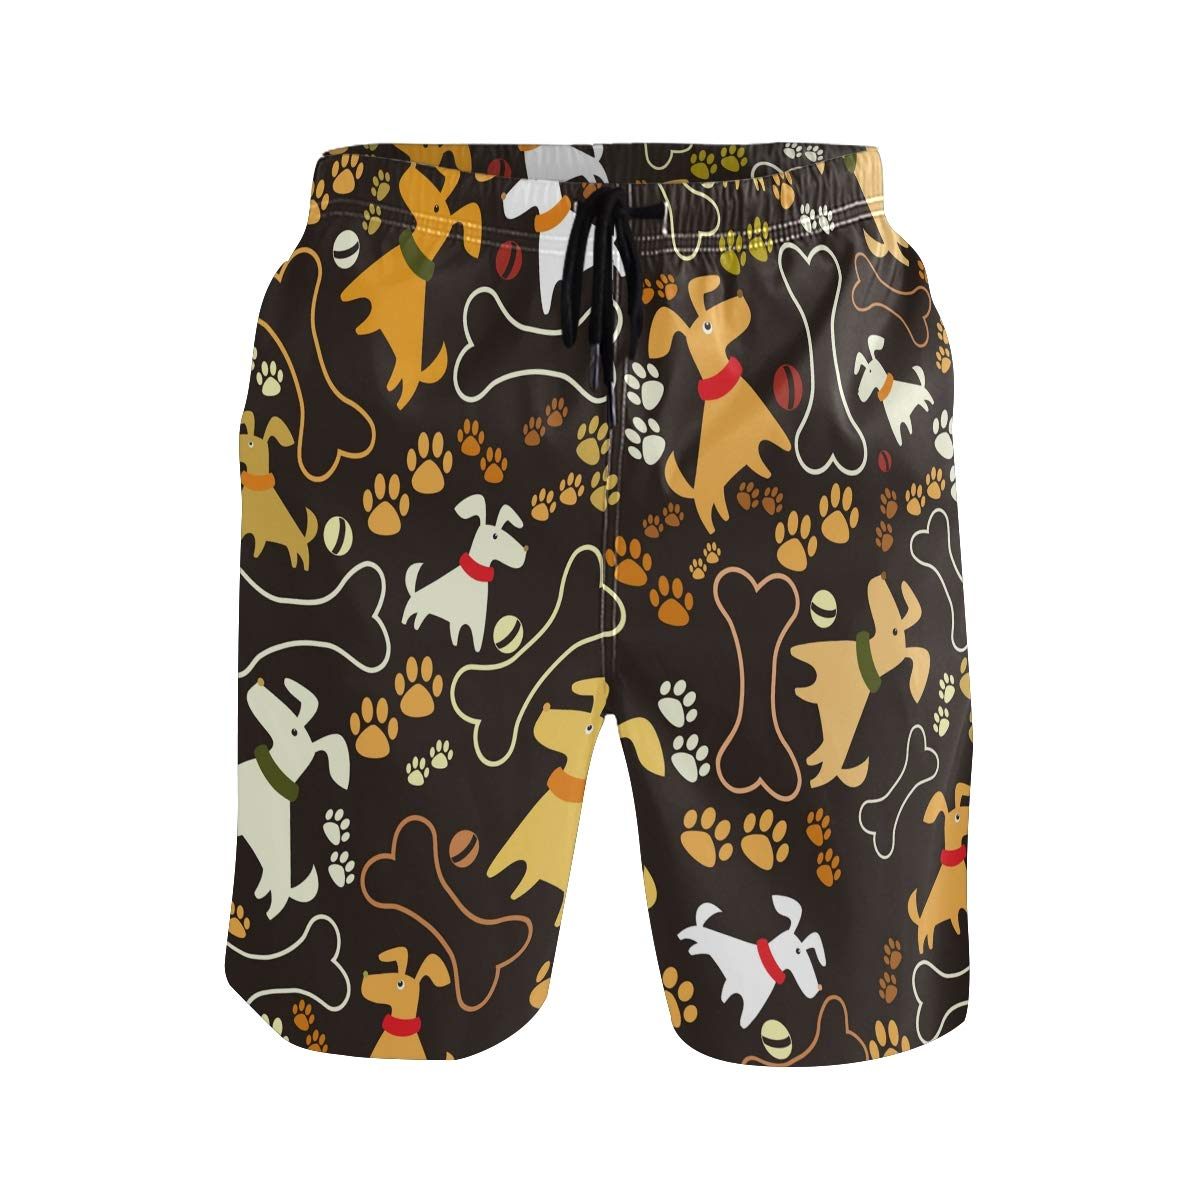 JERECY Mens Swim Trunks Cartoon Dog Paw Bone Pattern Quick Dry Board Shorts with Drawstring and Pockets